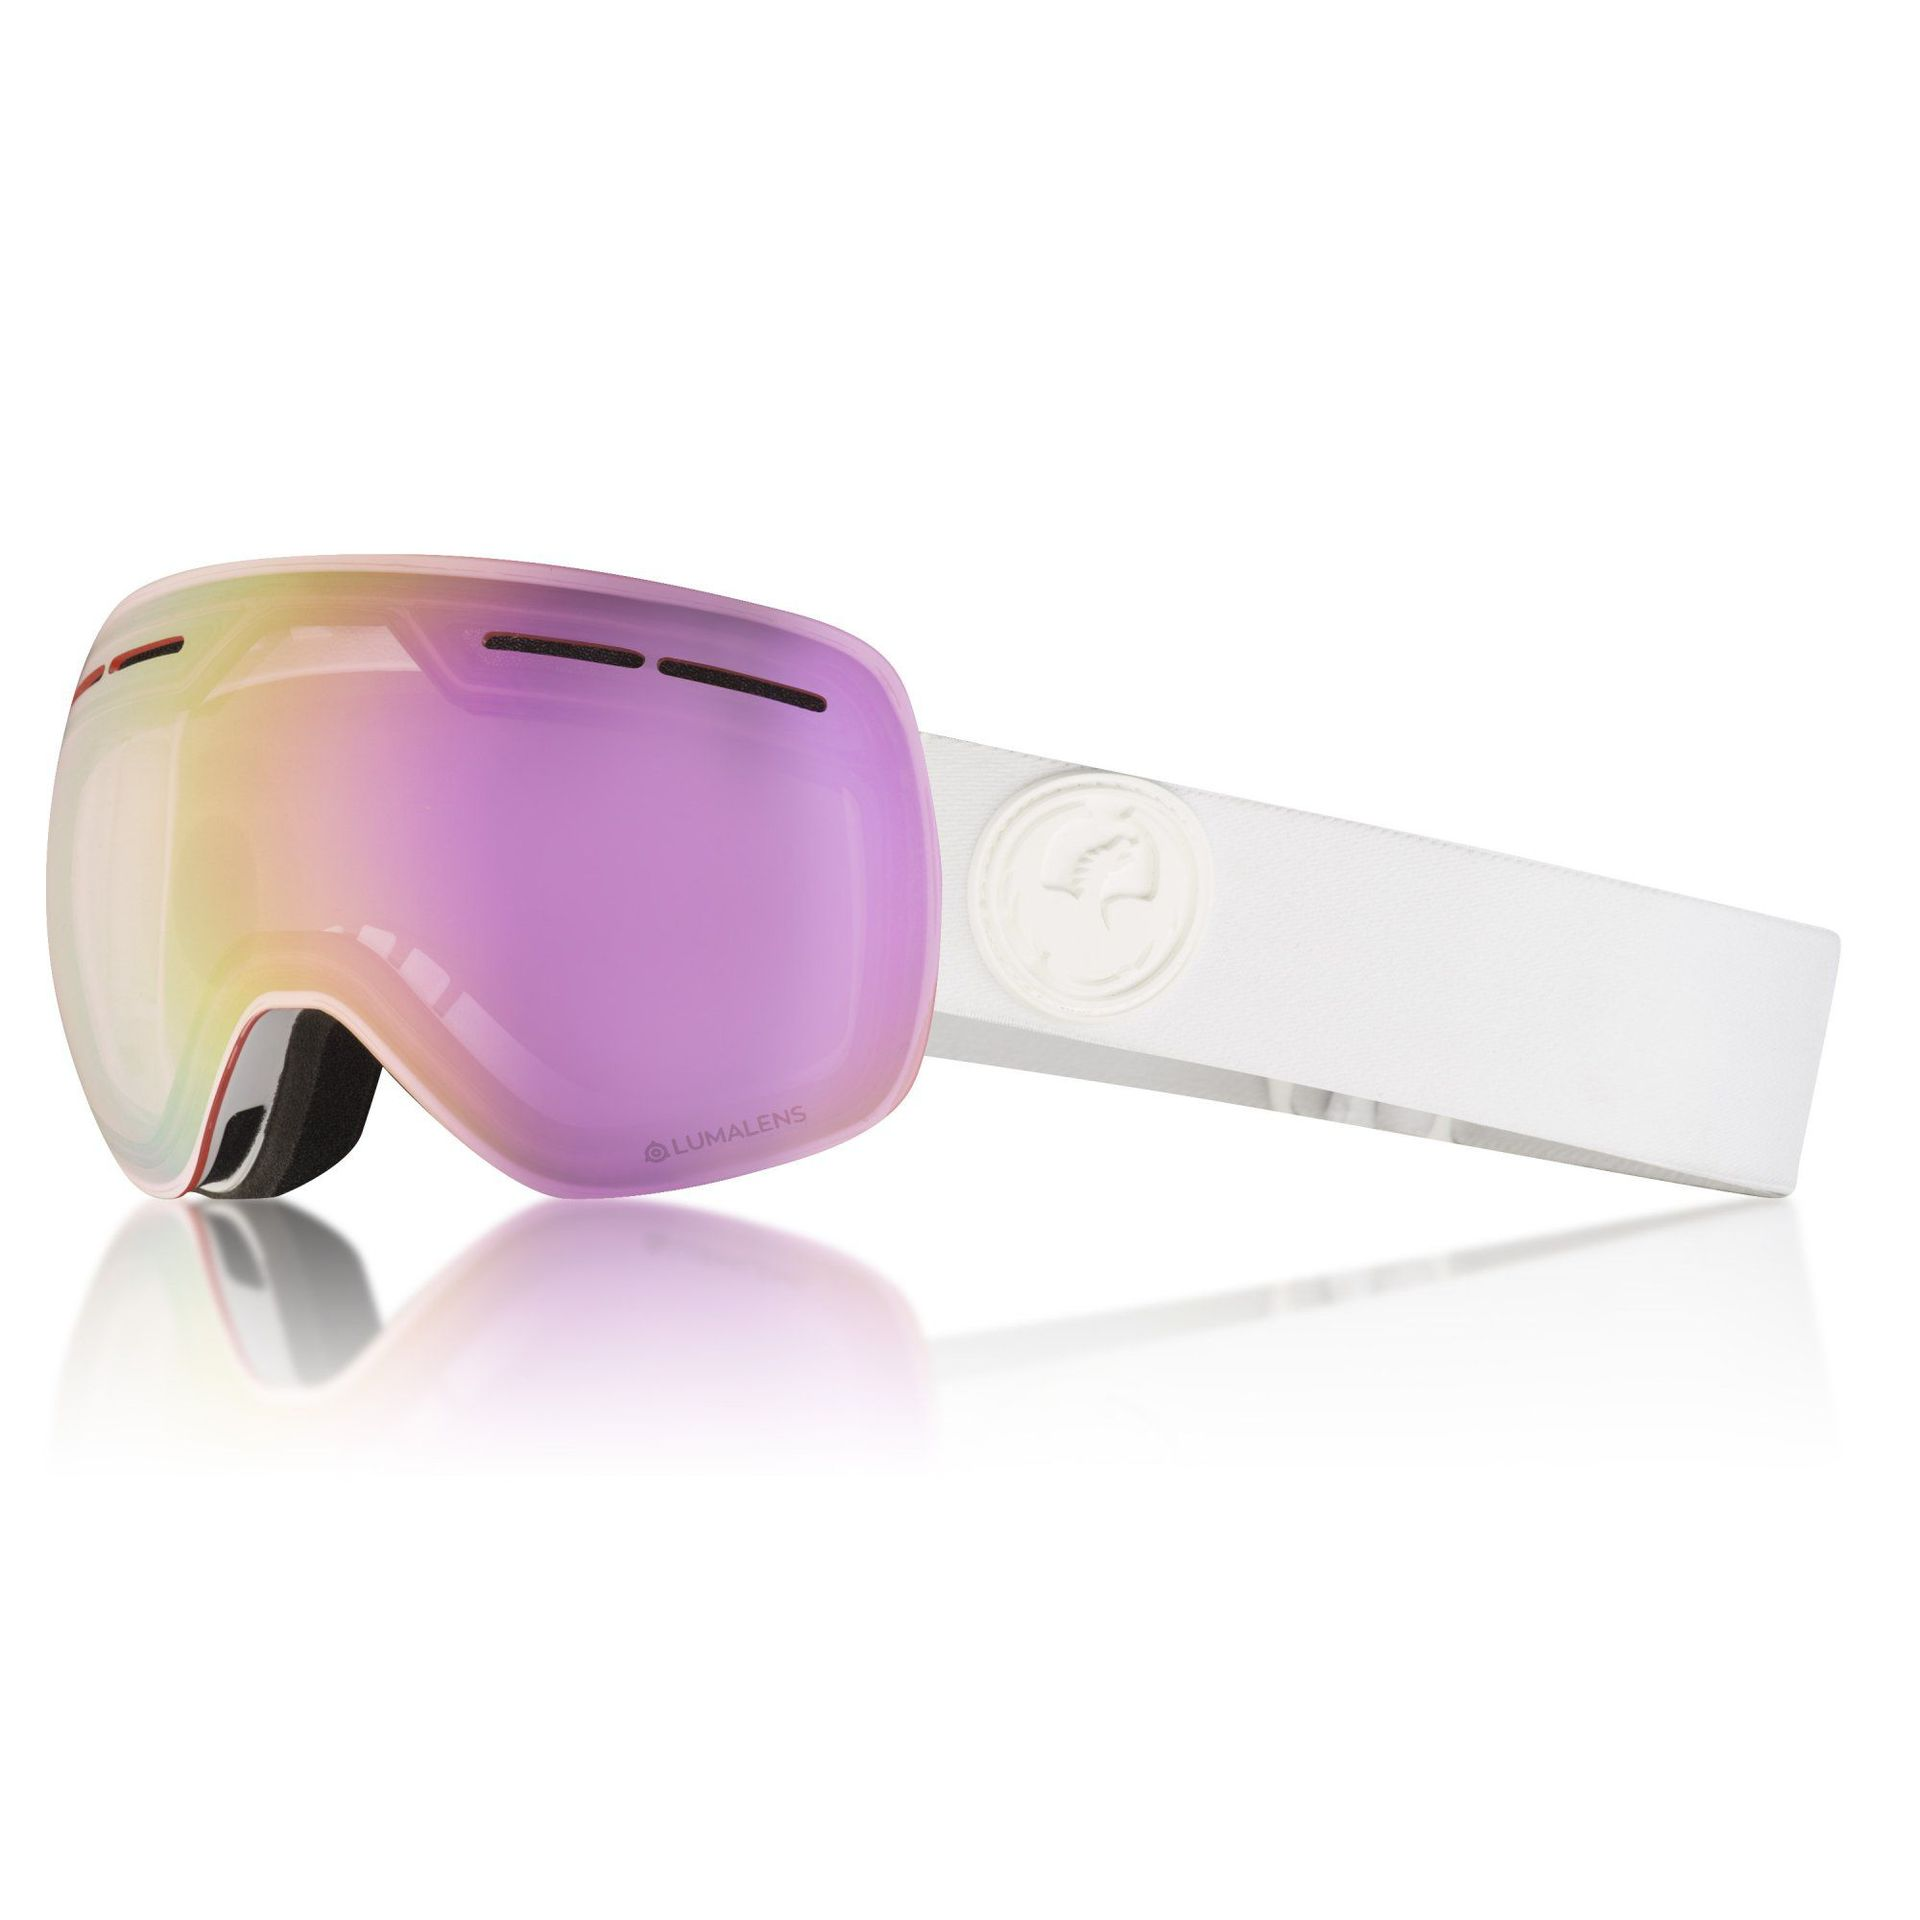 GOGLE DRAGON X1S WHITEOUT|PINK ION